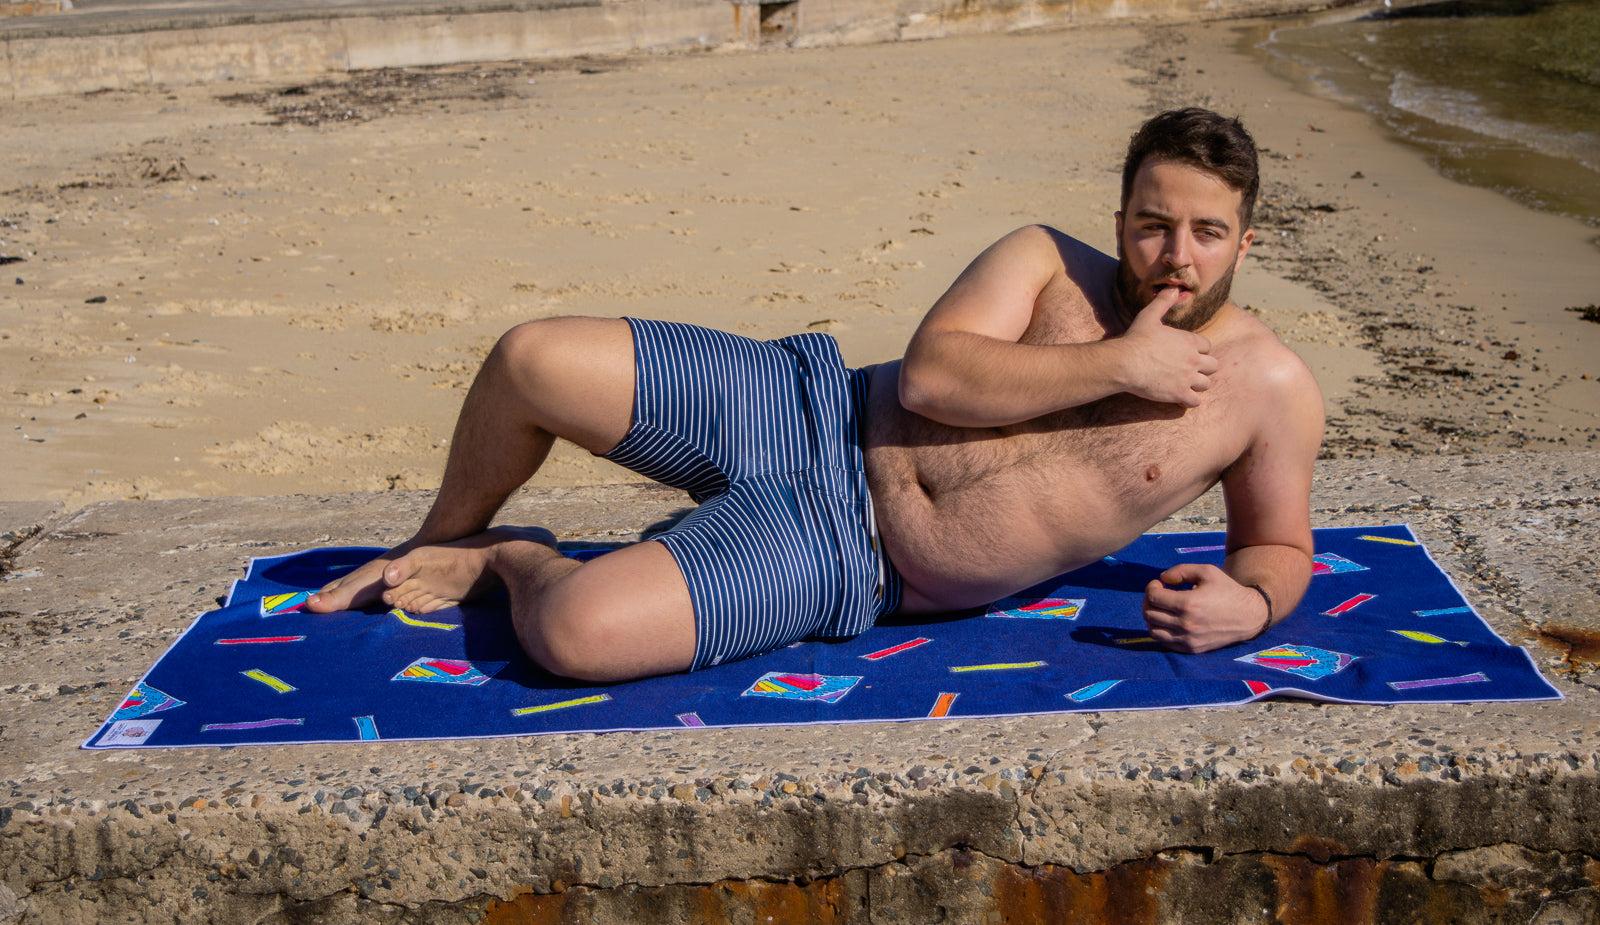 Funny pose on Lazy Wombat sand free ice block beach towel in Watson's bay